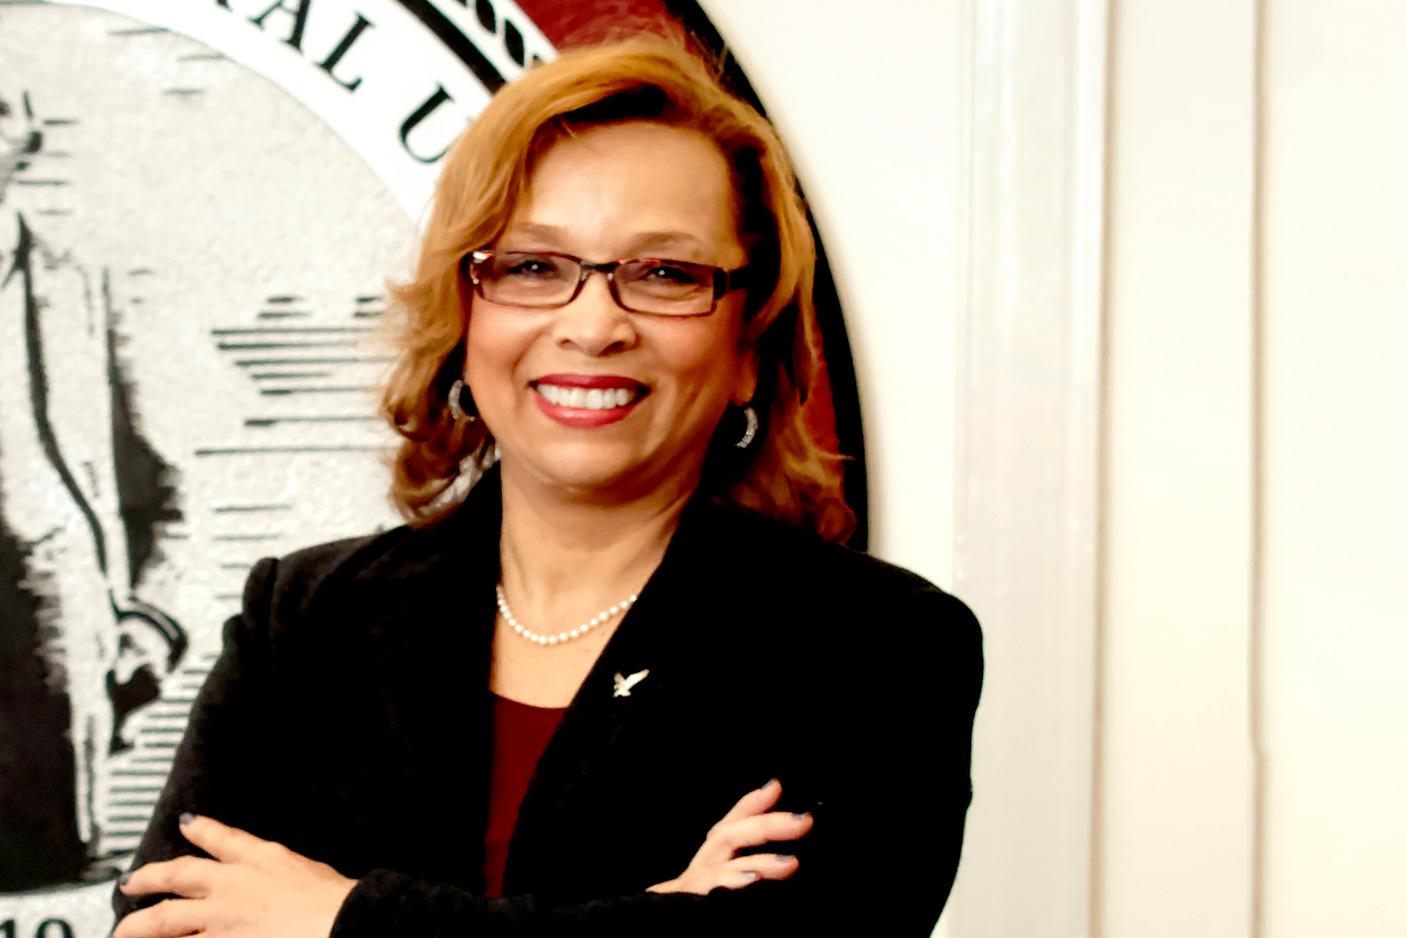 Debra Saunders-White, a UVA graduate and the chancellor of North Carolina Central University, passed away on Nov. 26. (Photo courtesy of NCCU Office of University Relations.)